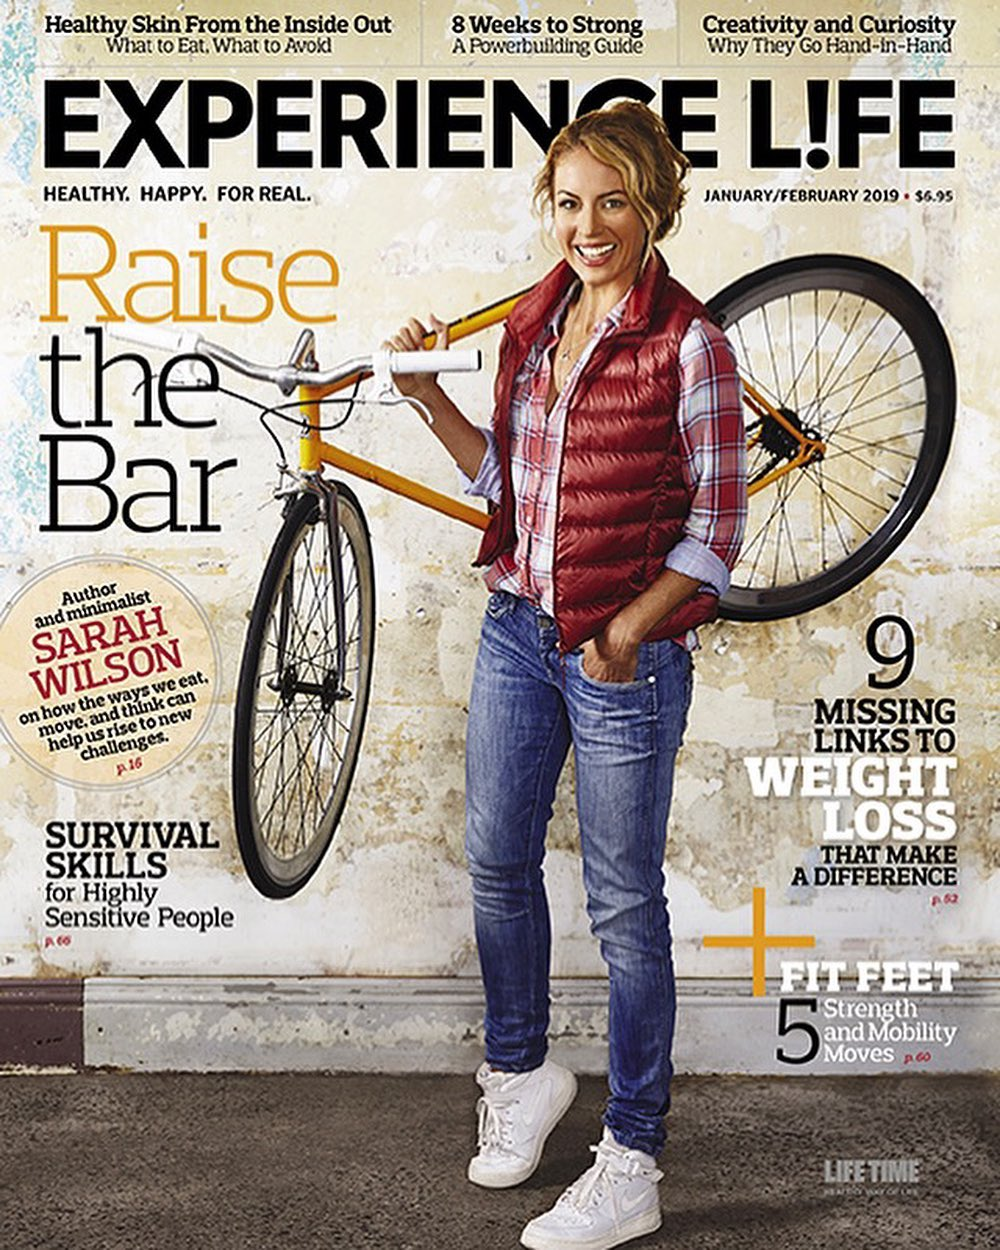 Sarah and her bike featured on the front cover of Experience Life magazine - Jan/Feb 2019 edition